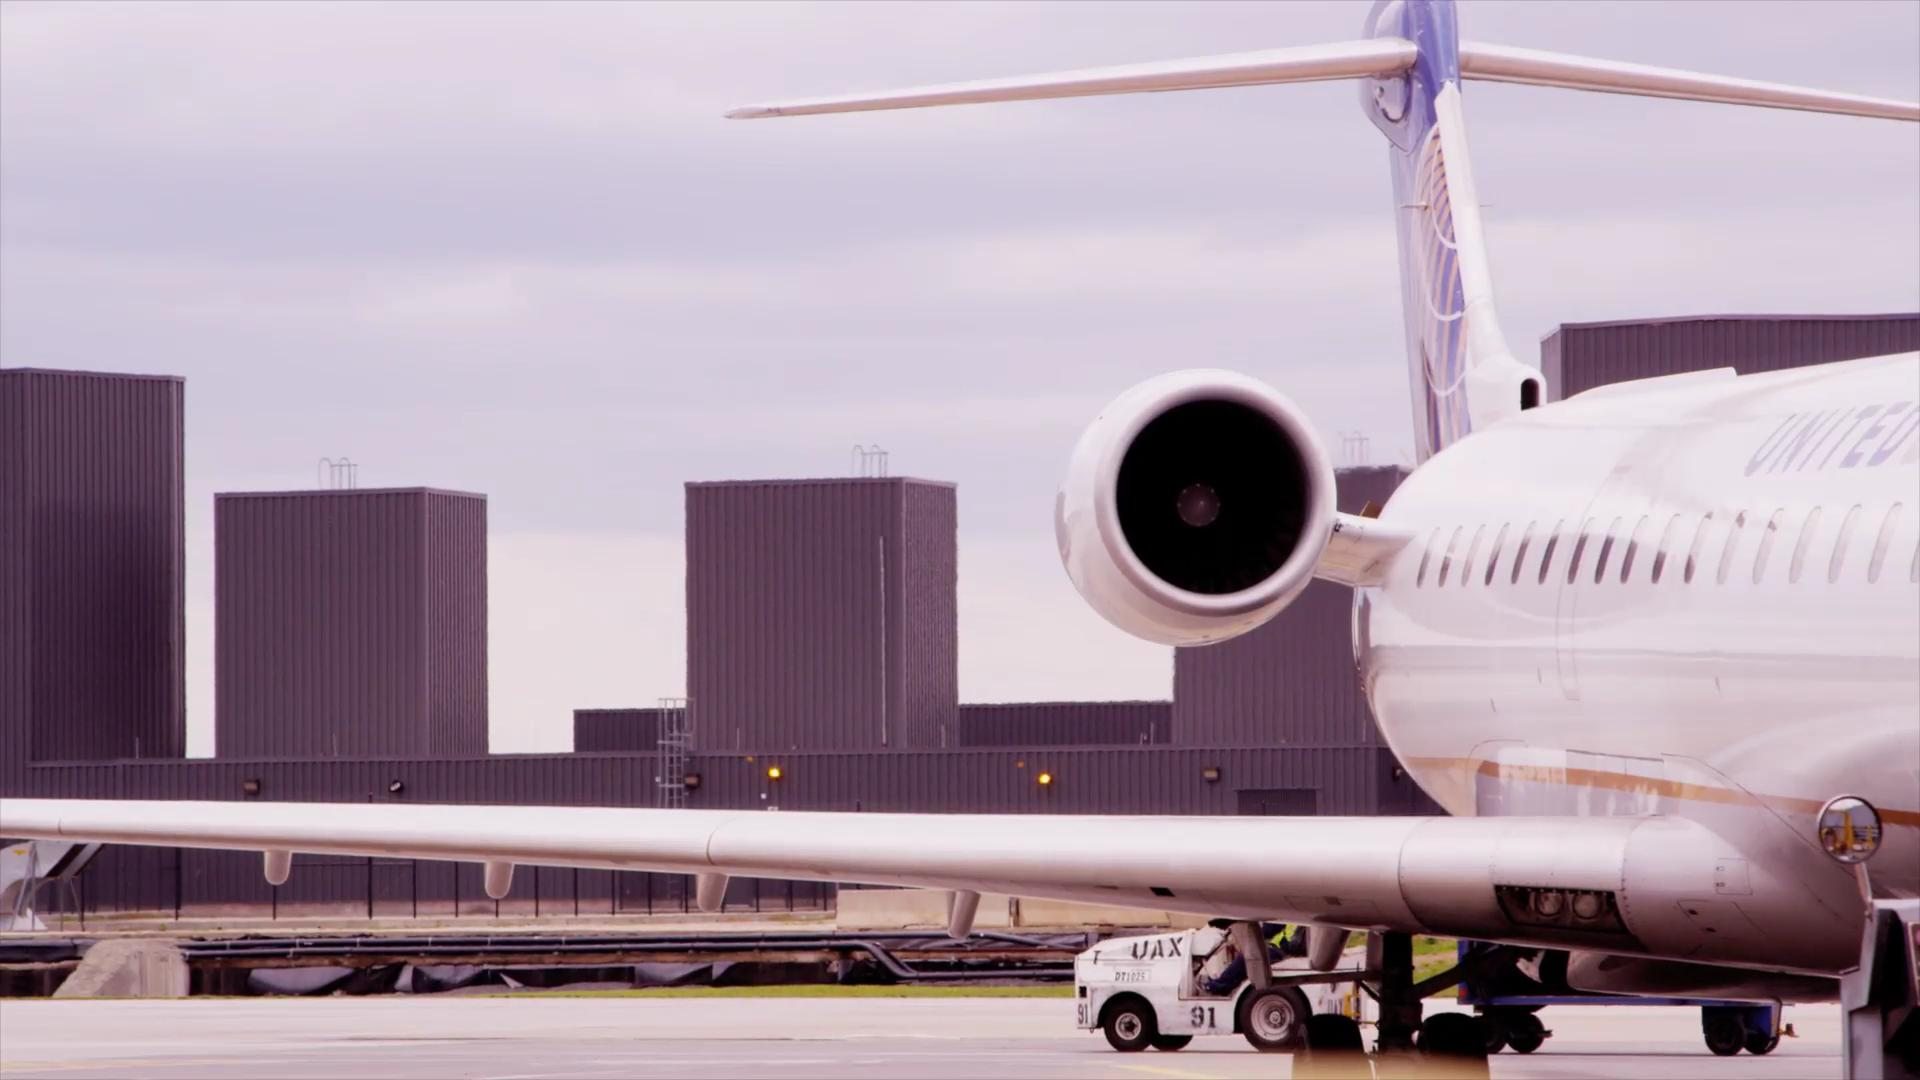 If your last flight was than perfect you'll want to arm yourself with a few airline secrets. Krystin Goodwin (@Krystingoodwin) has five things airlines don't want you to know.